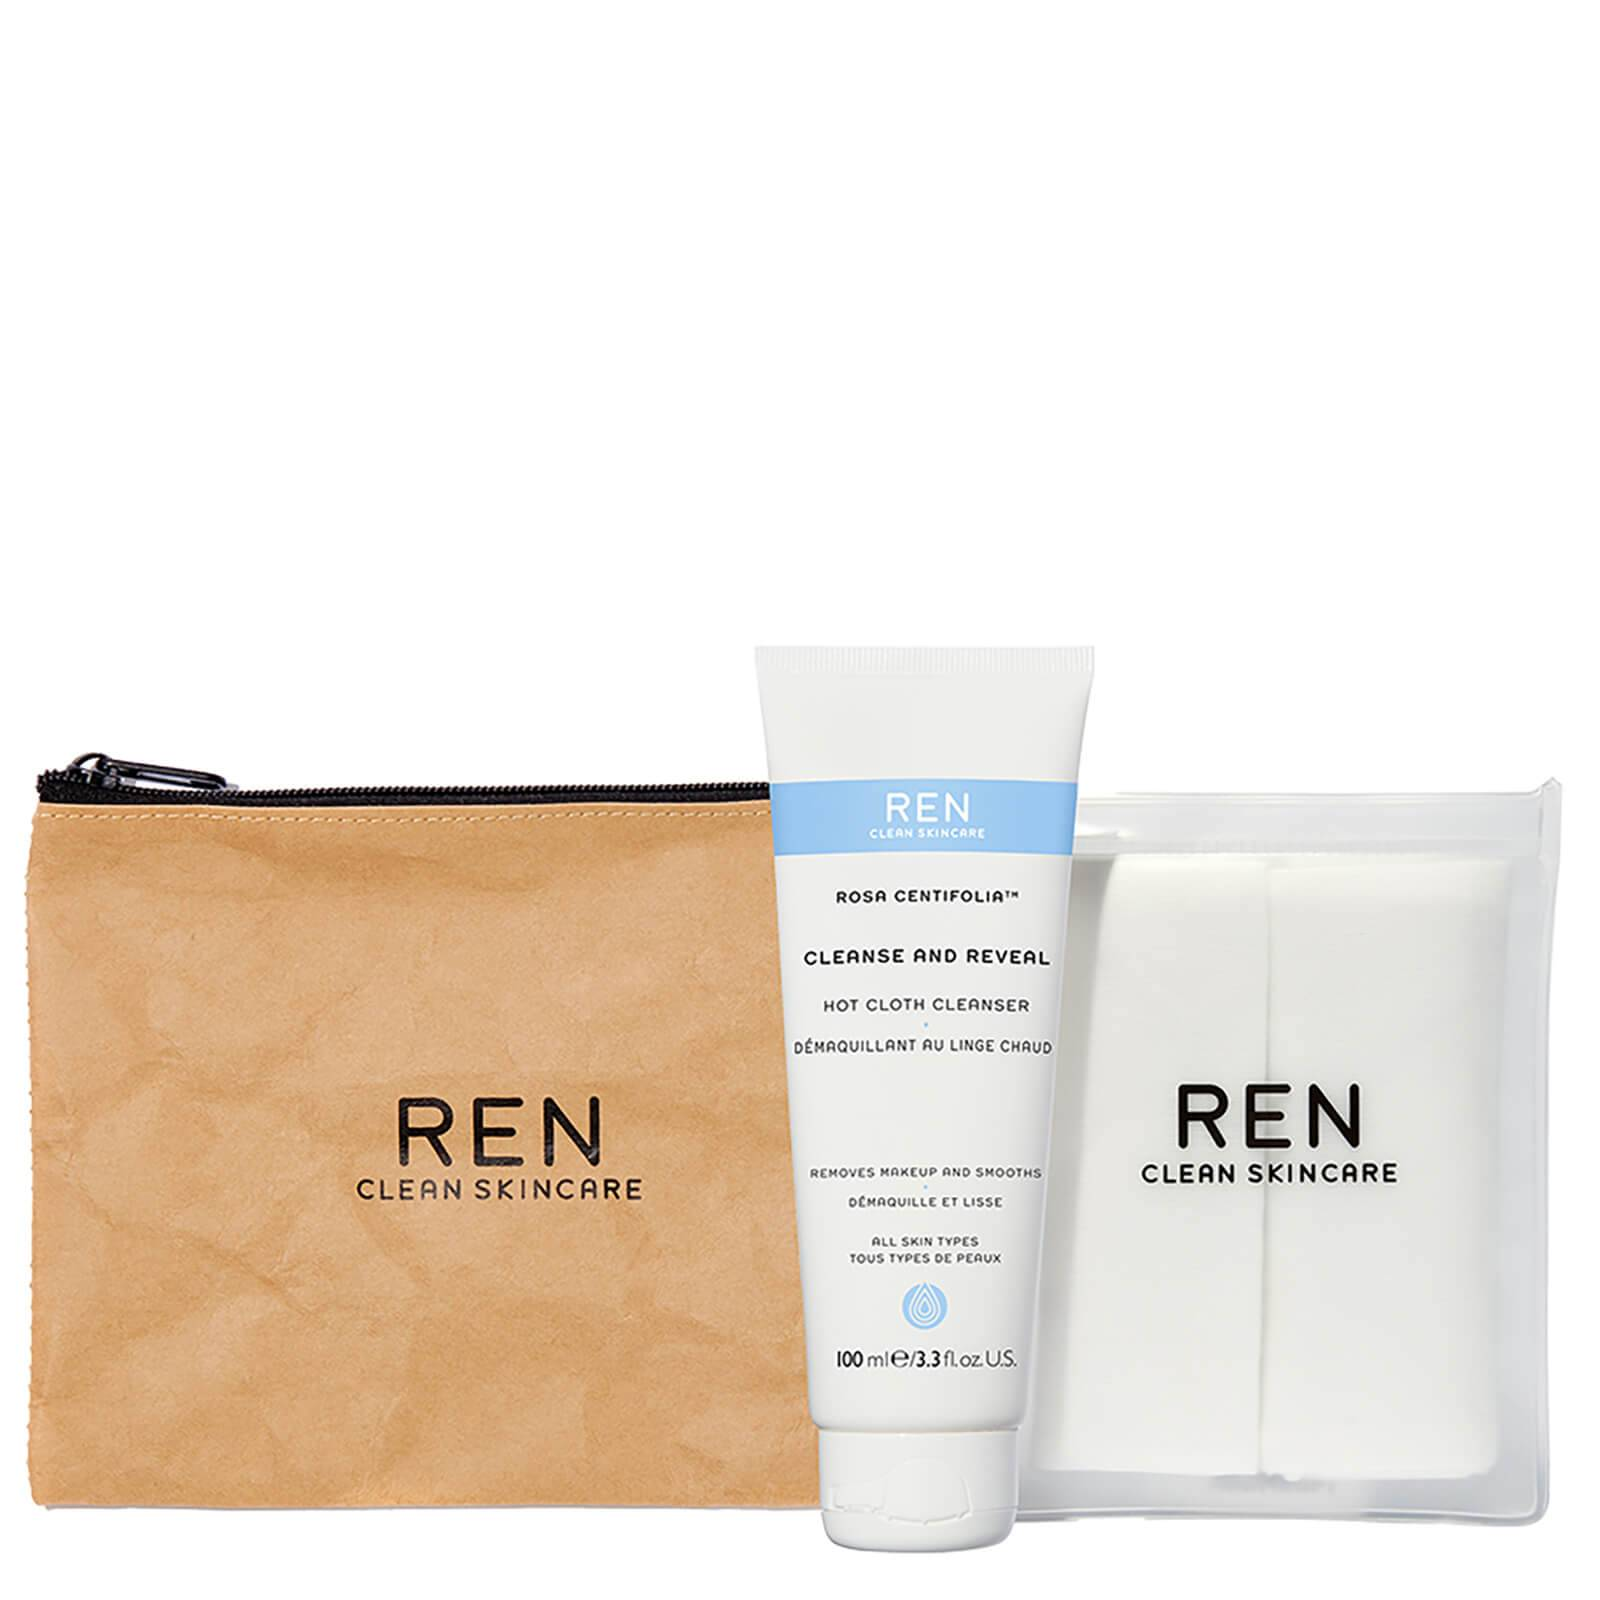 REN Clean Skincare REN Cleanse and Reveal Hot Cloth Cleanser Kit